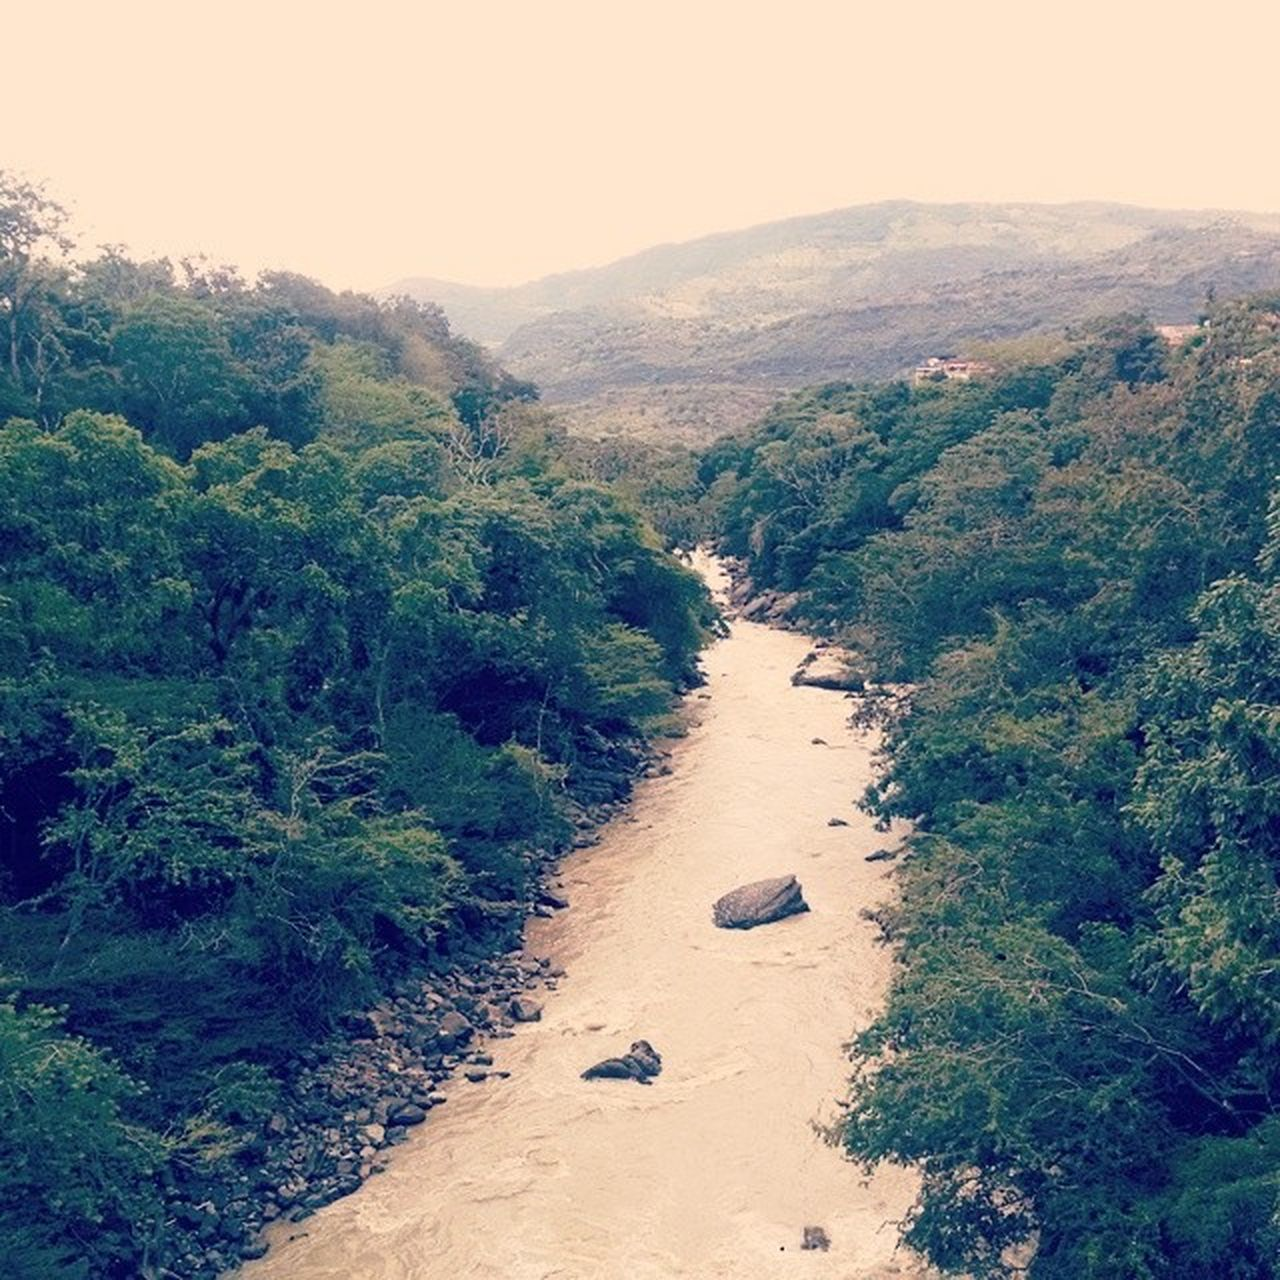 Río Chicamocha River View River Collection Water Rio Rivers Forest Forest River Jungle Jungle River Jungle River South America